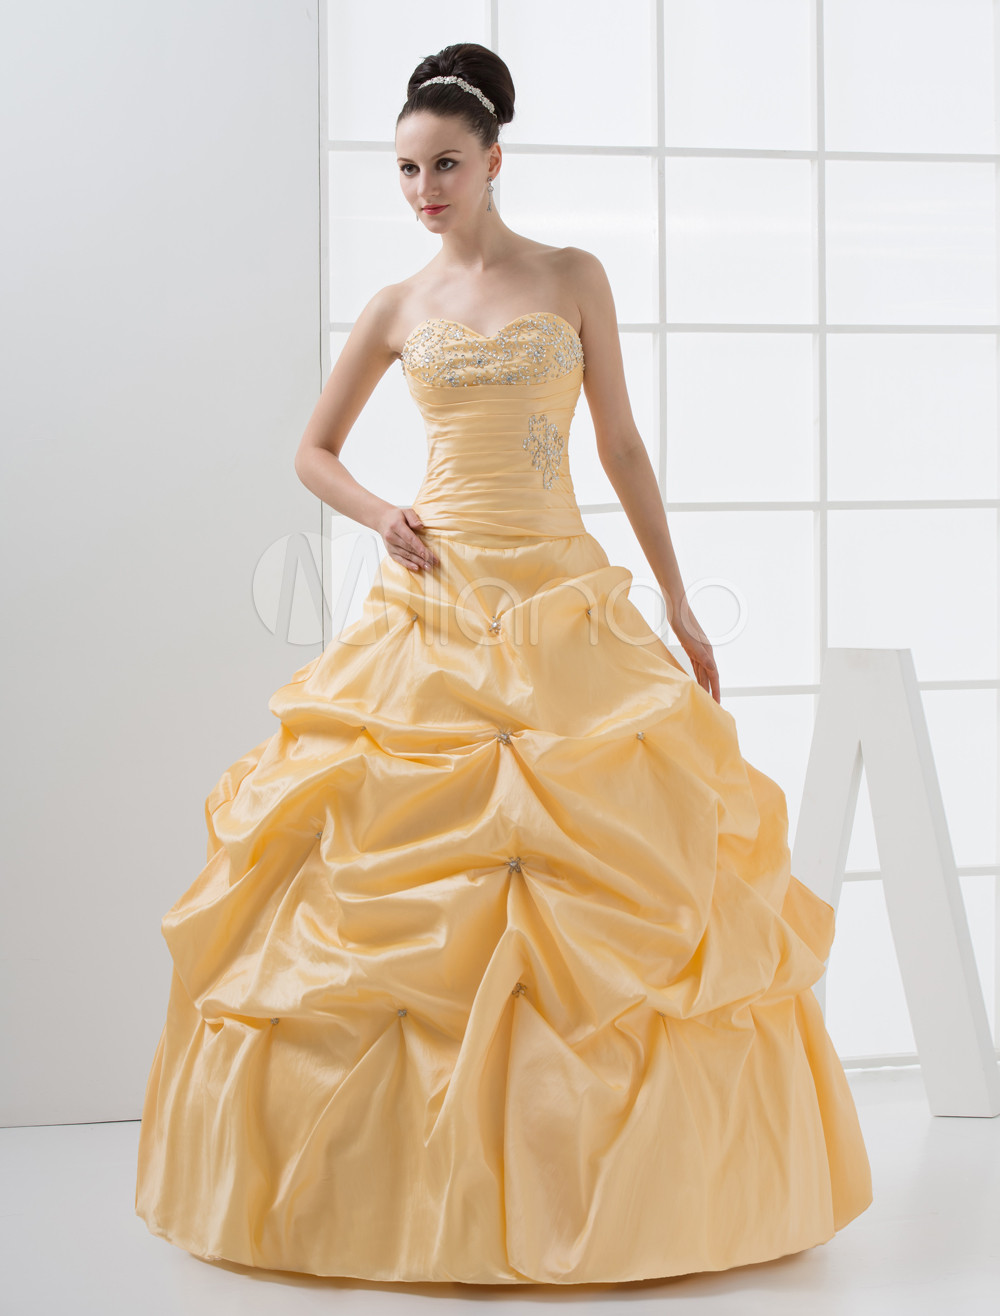 Sequin Beading Sweetheart Floor-Length Yellow Taffeta Ball Gown